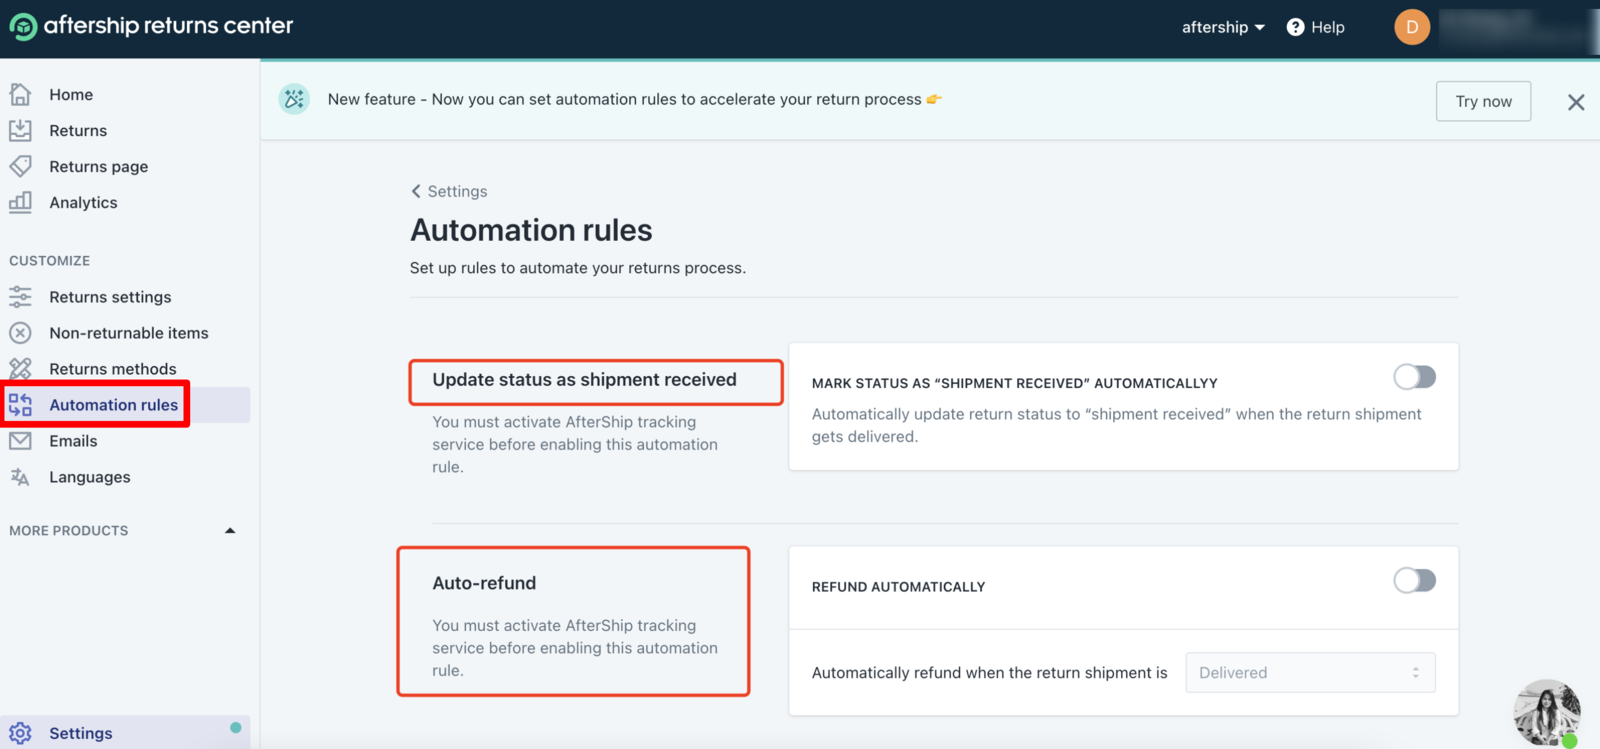 Expedite the returns process with the new automation rules